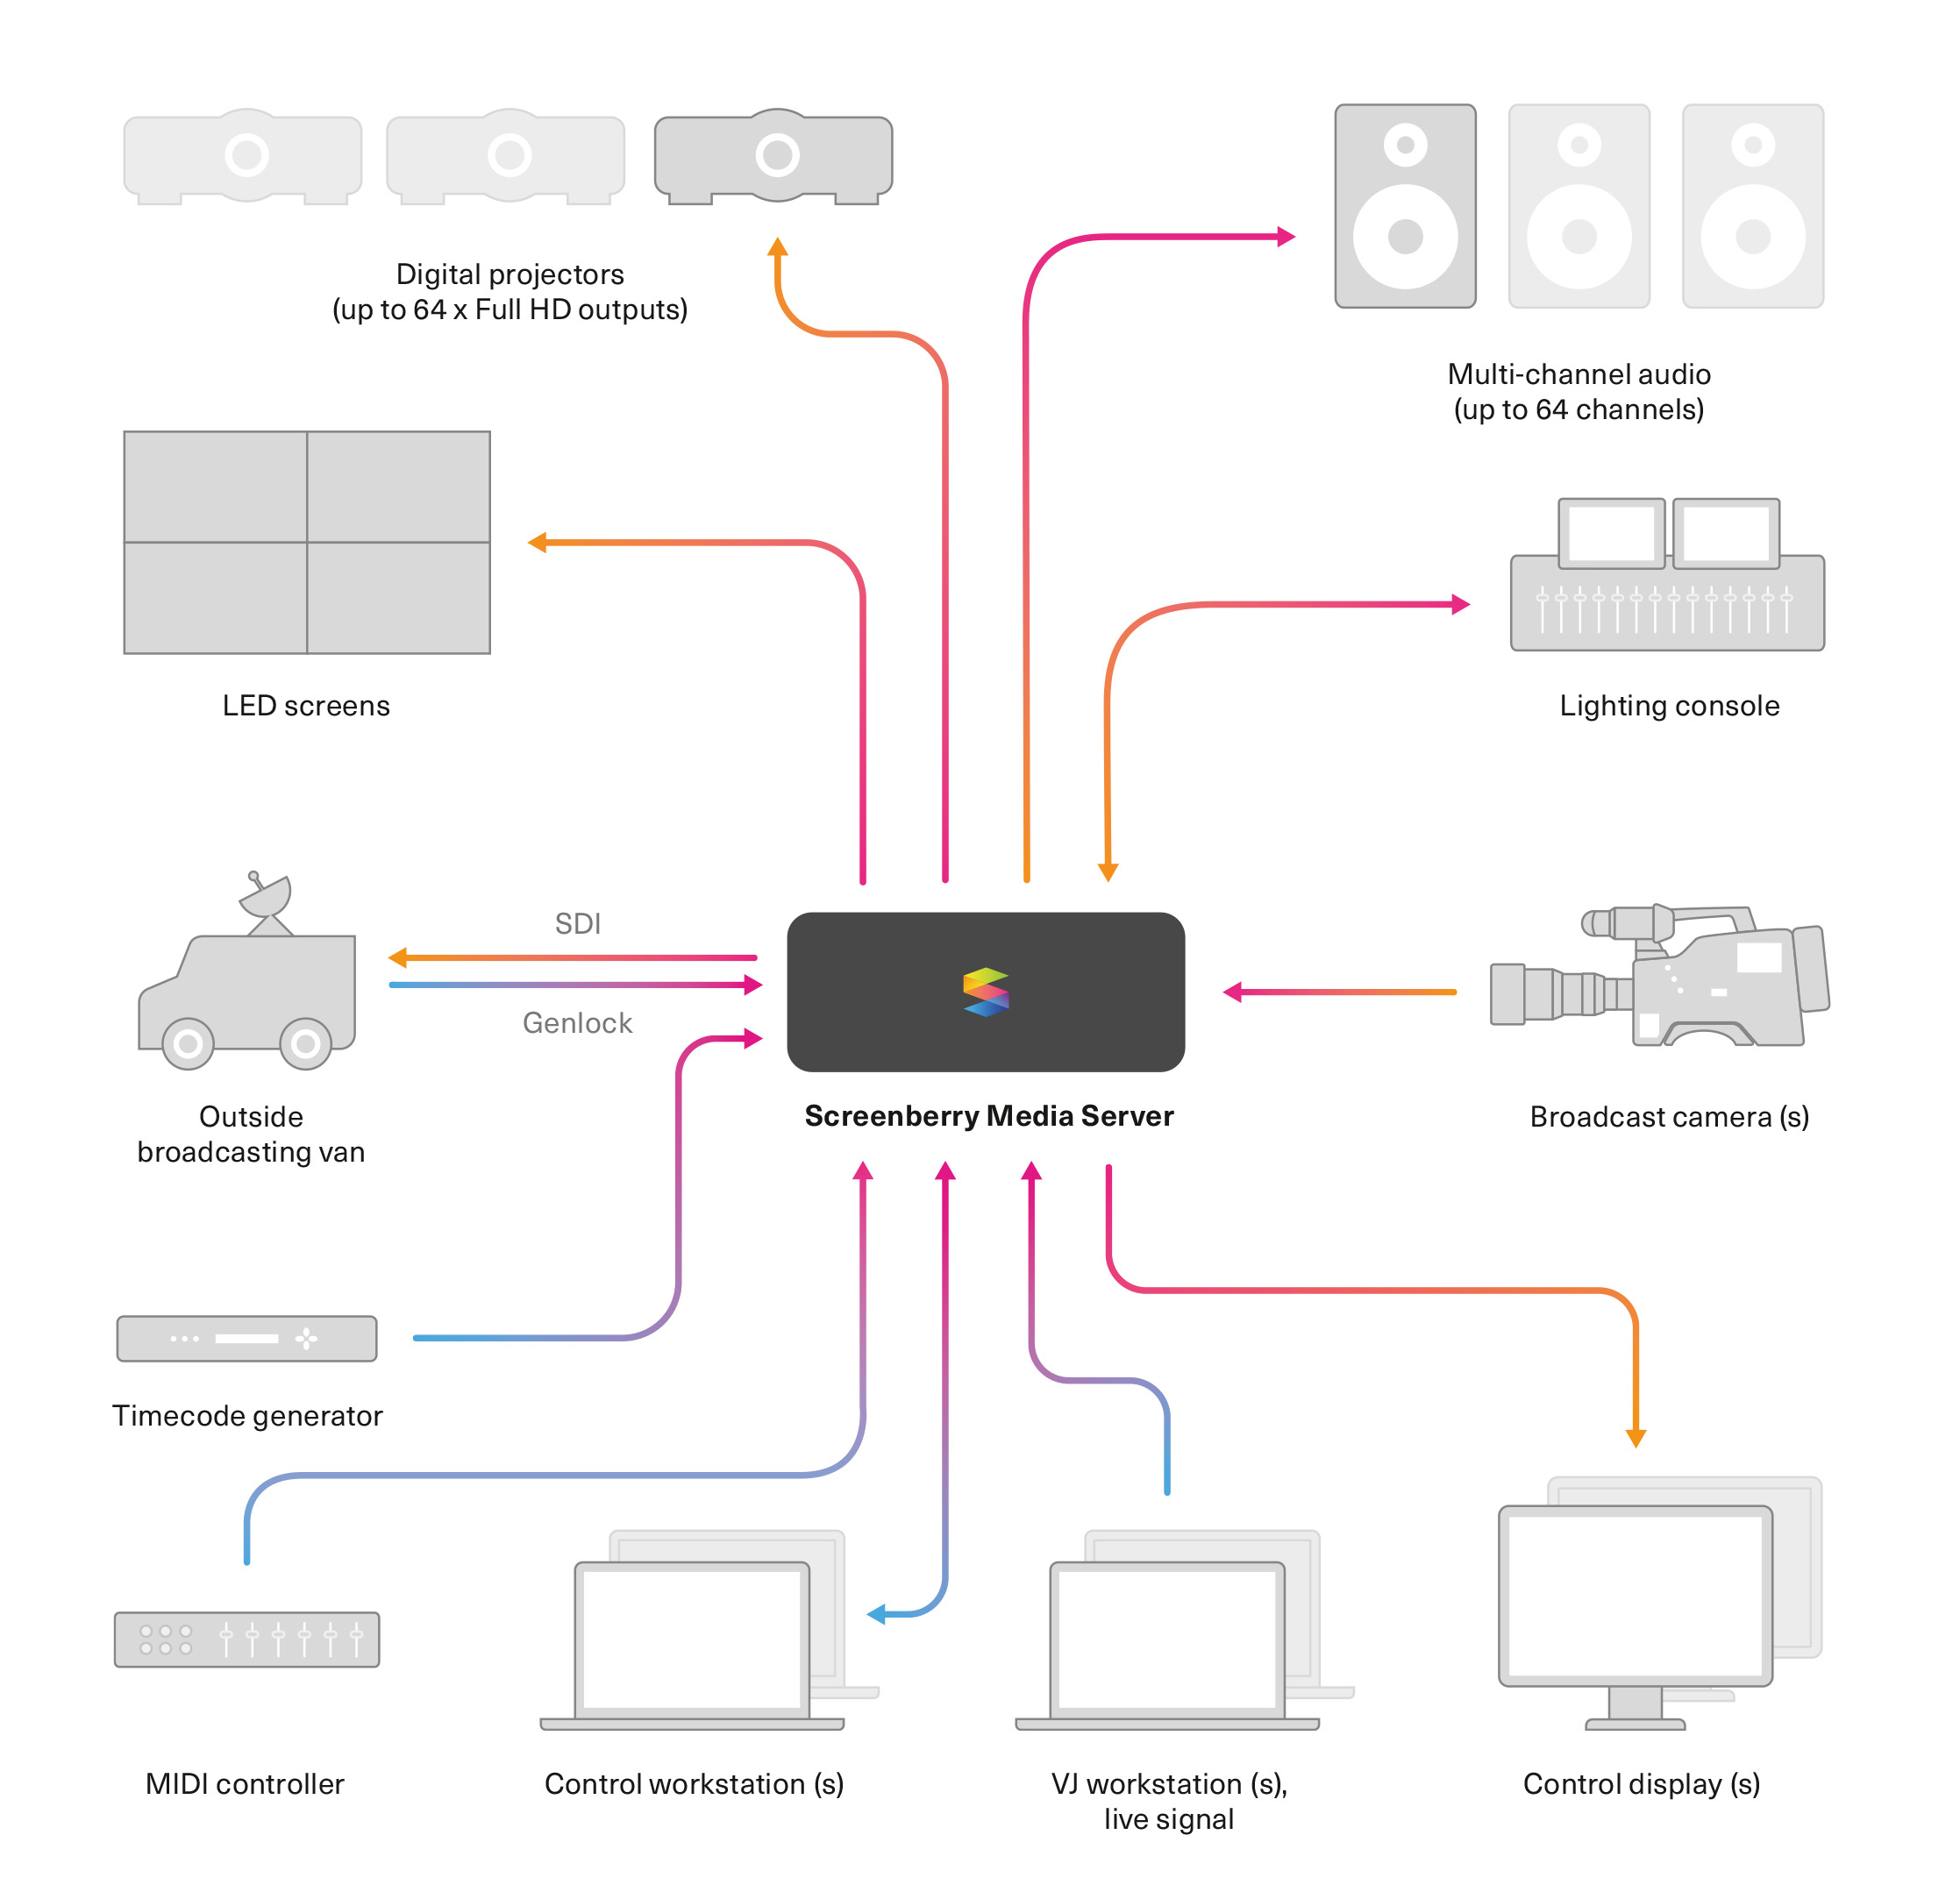 Screenberry-Live-event-connection-diagram.jpg